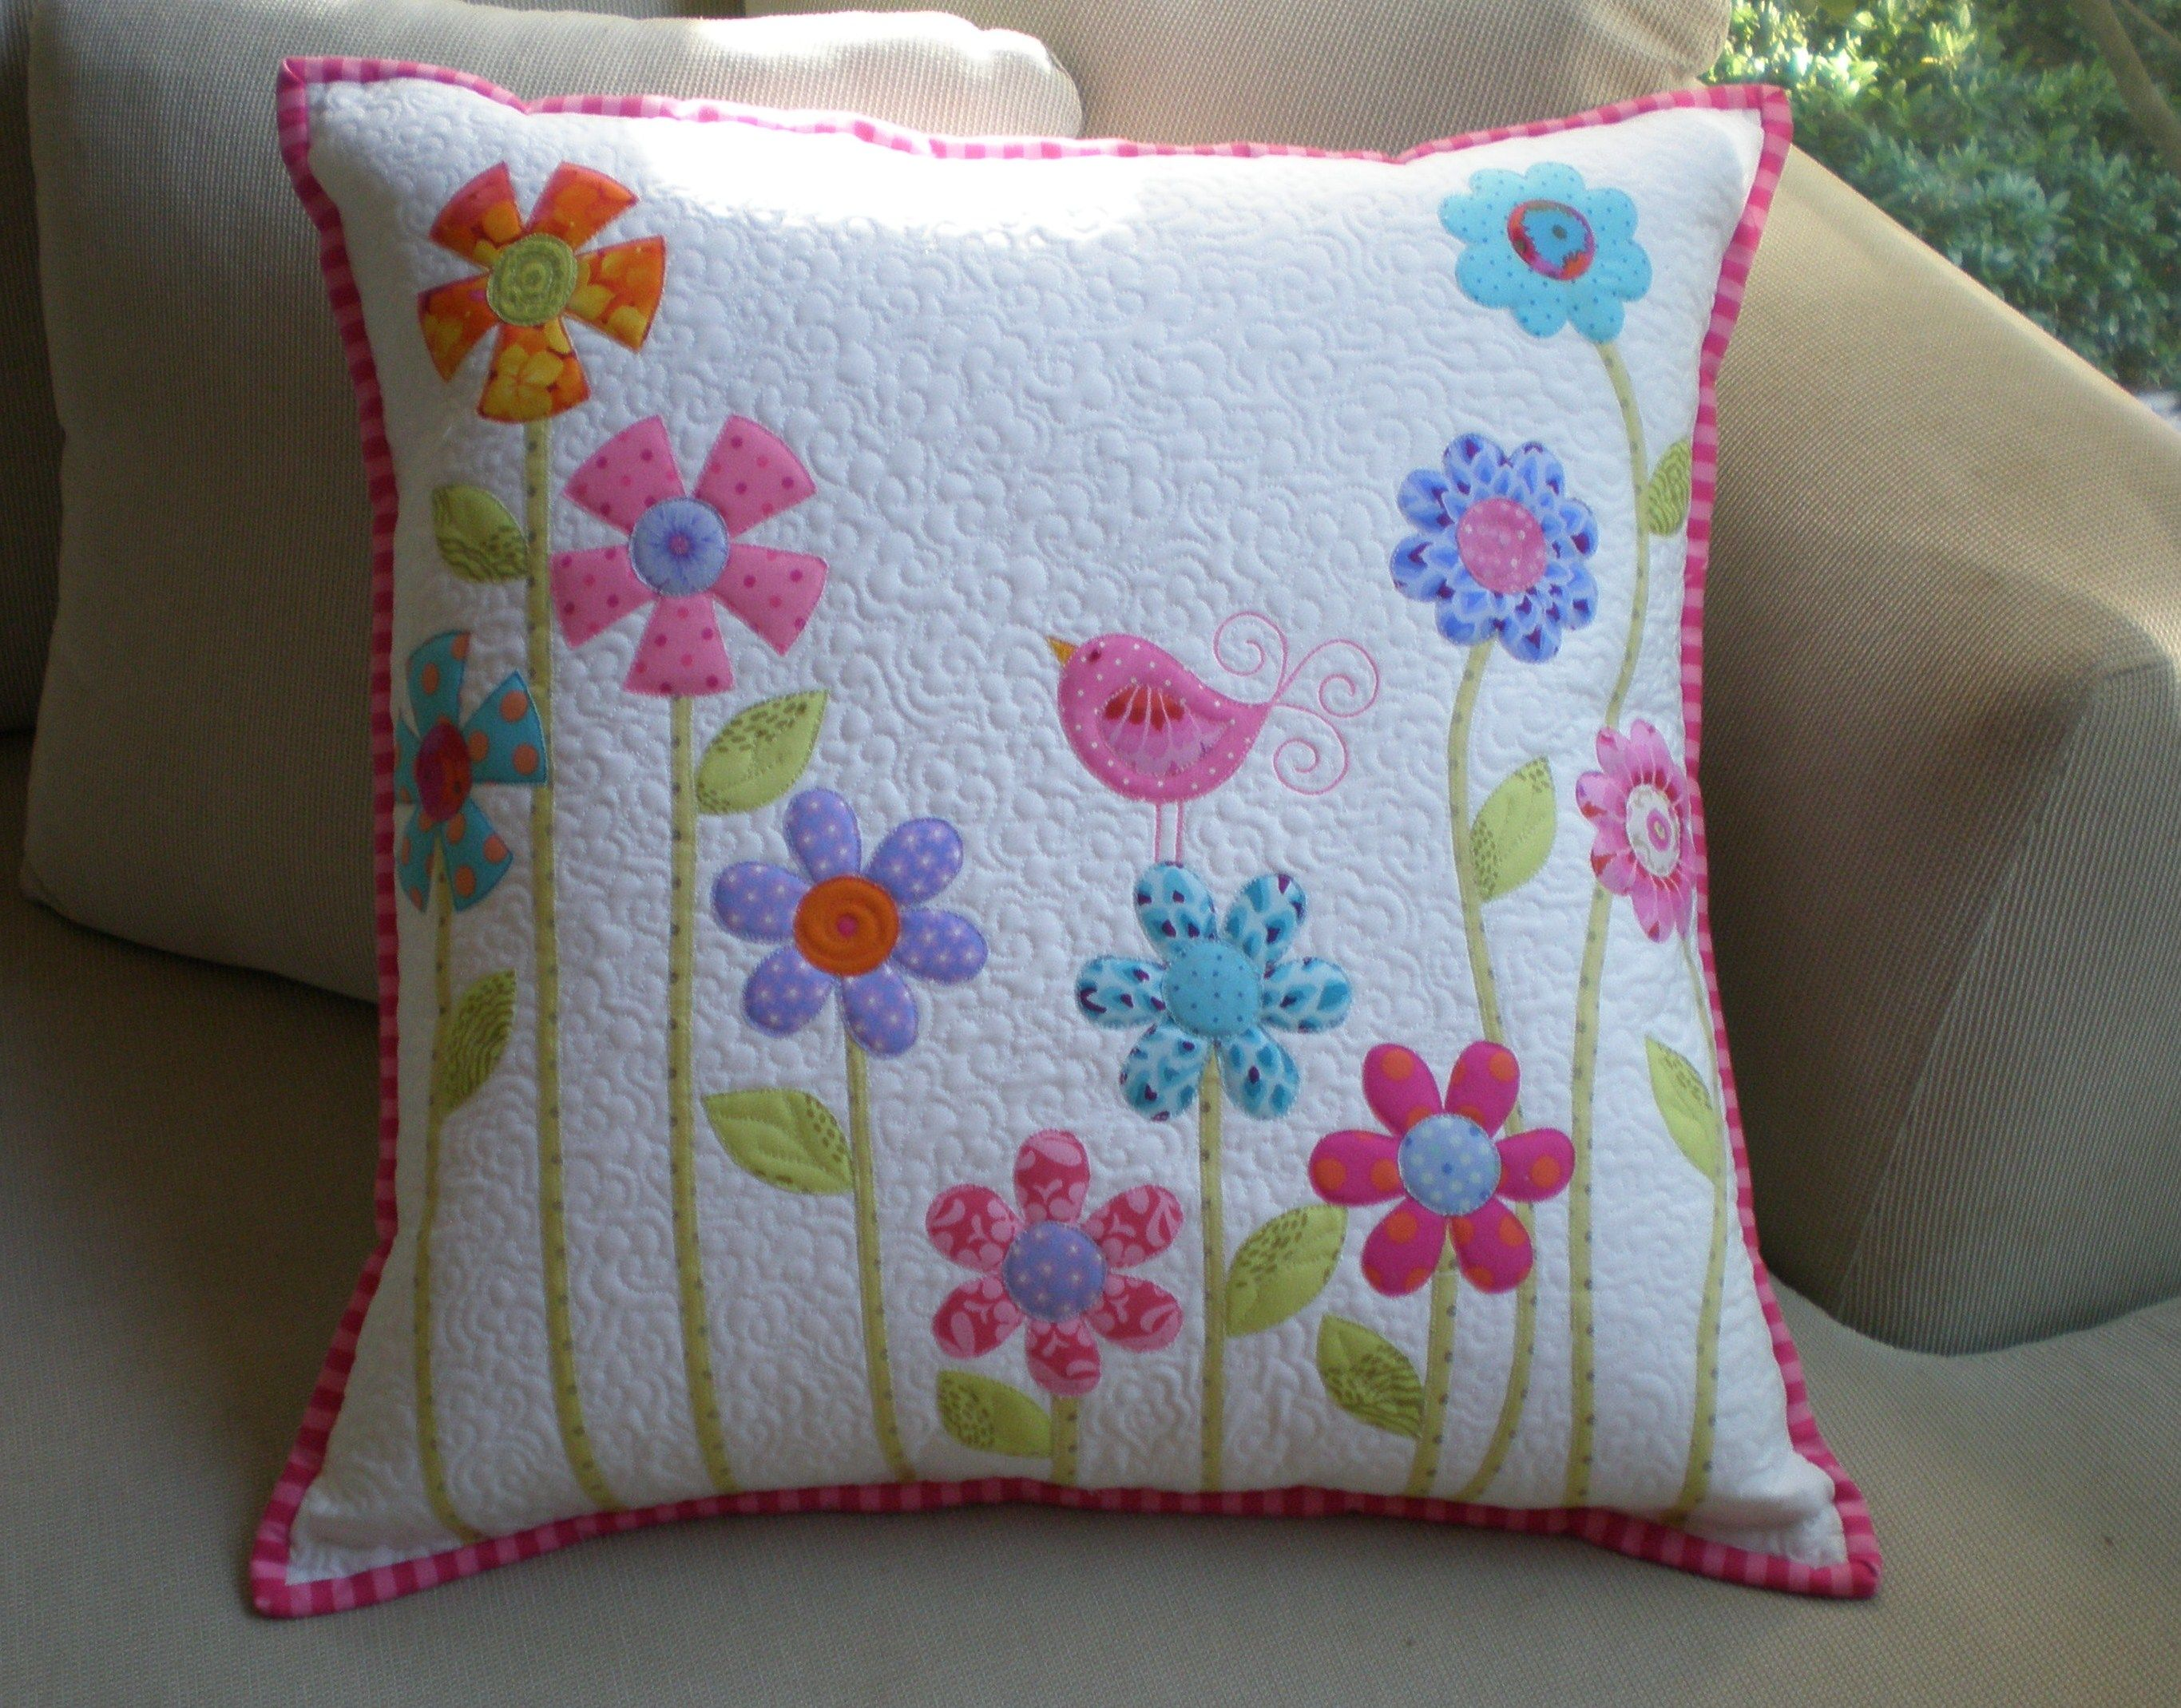 My Bright, Happy, Quilted Wall Hanging | Applique pillows, Pillows ... : quilt pillow patterns - Adamdwight.com